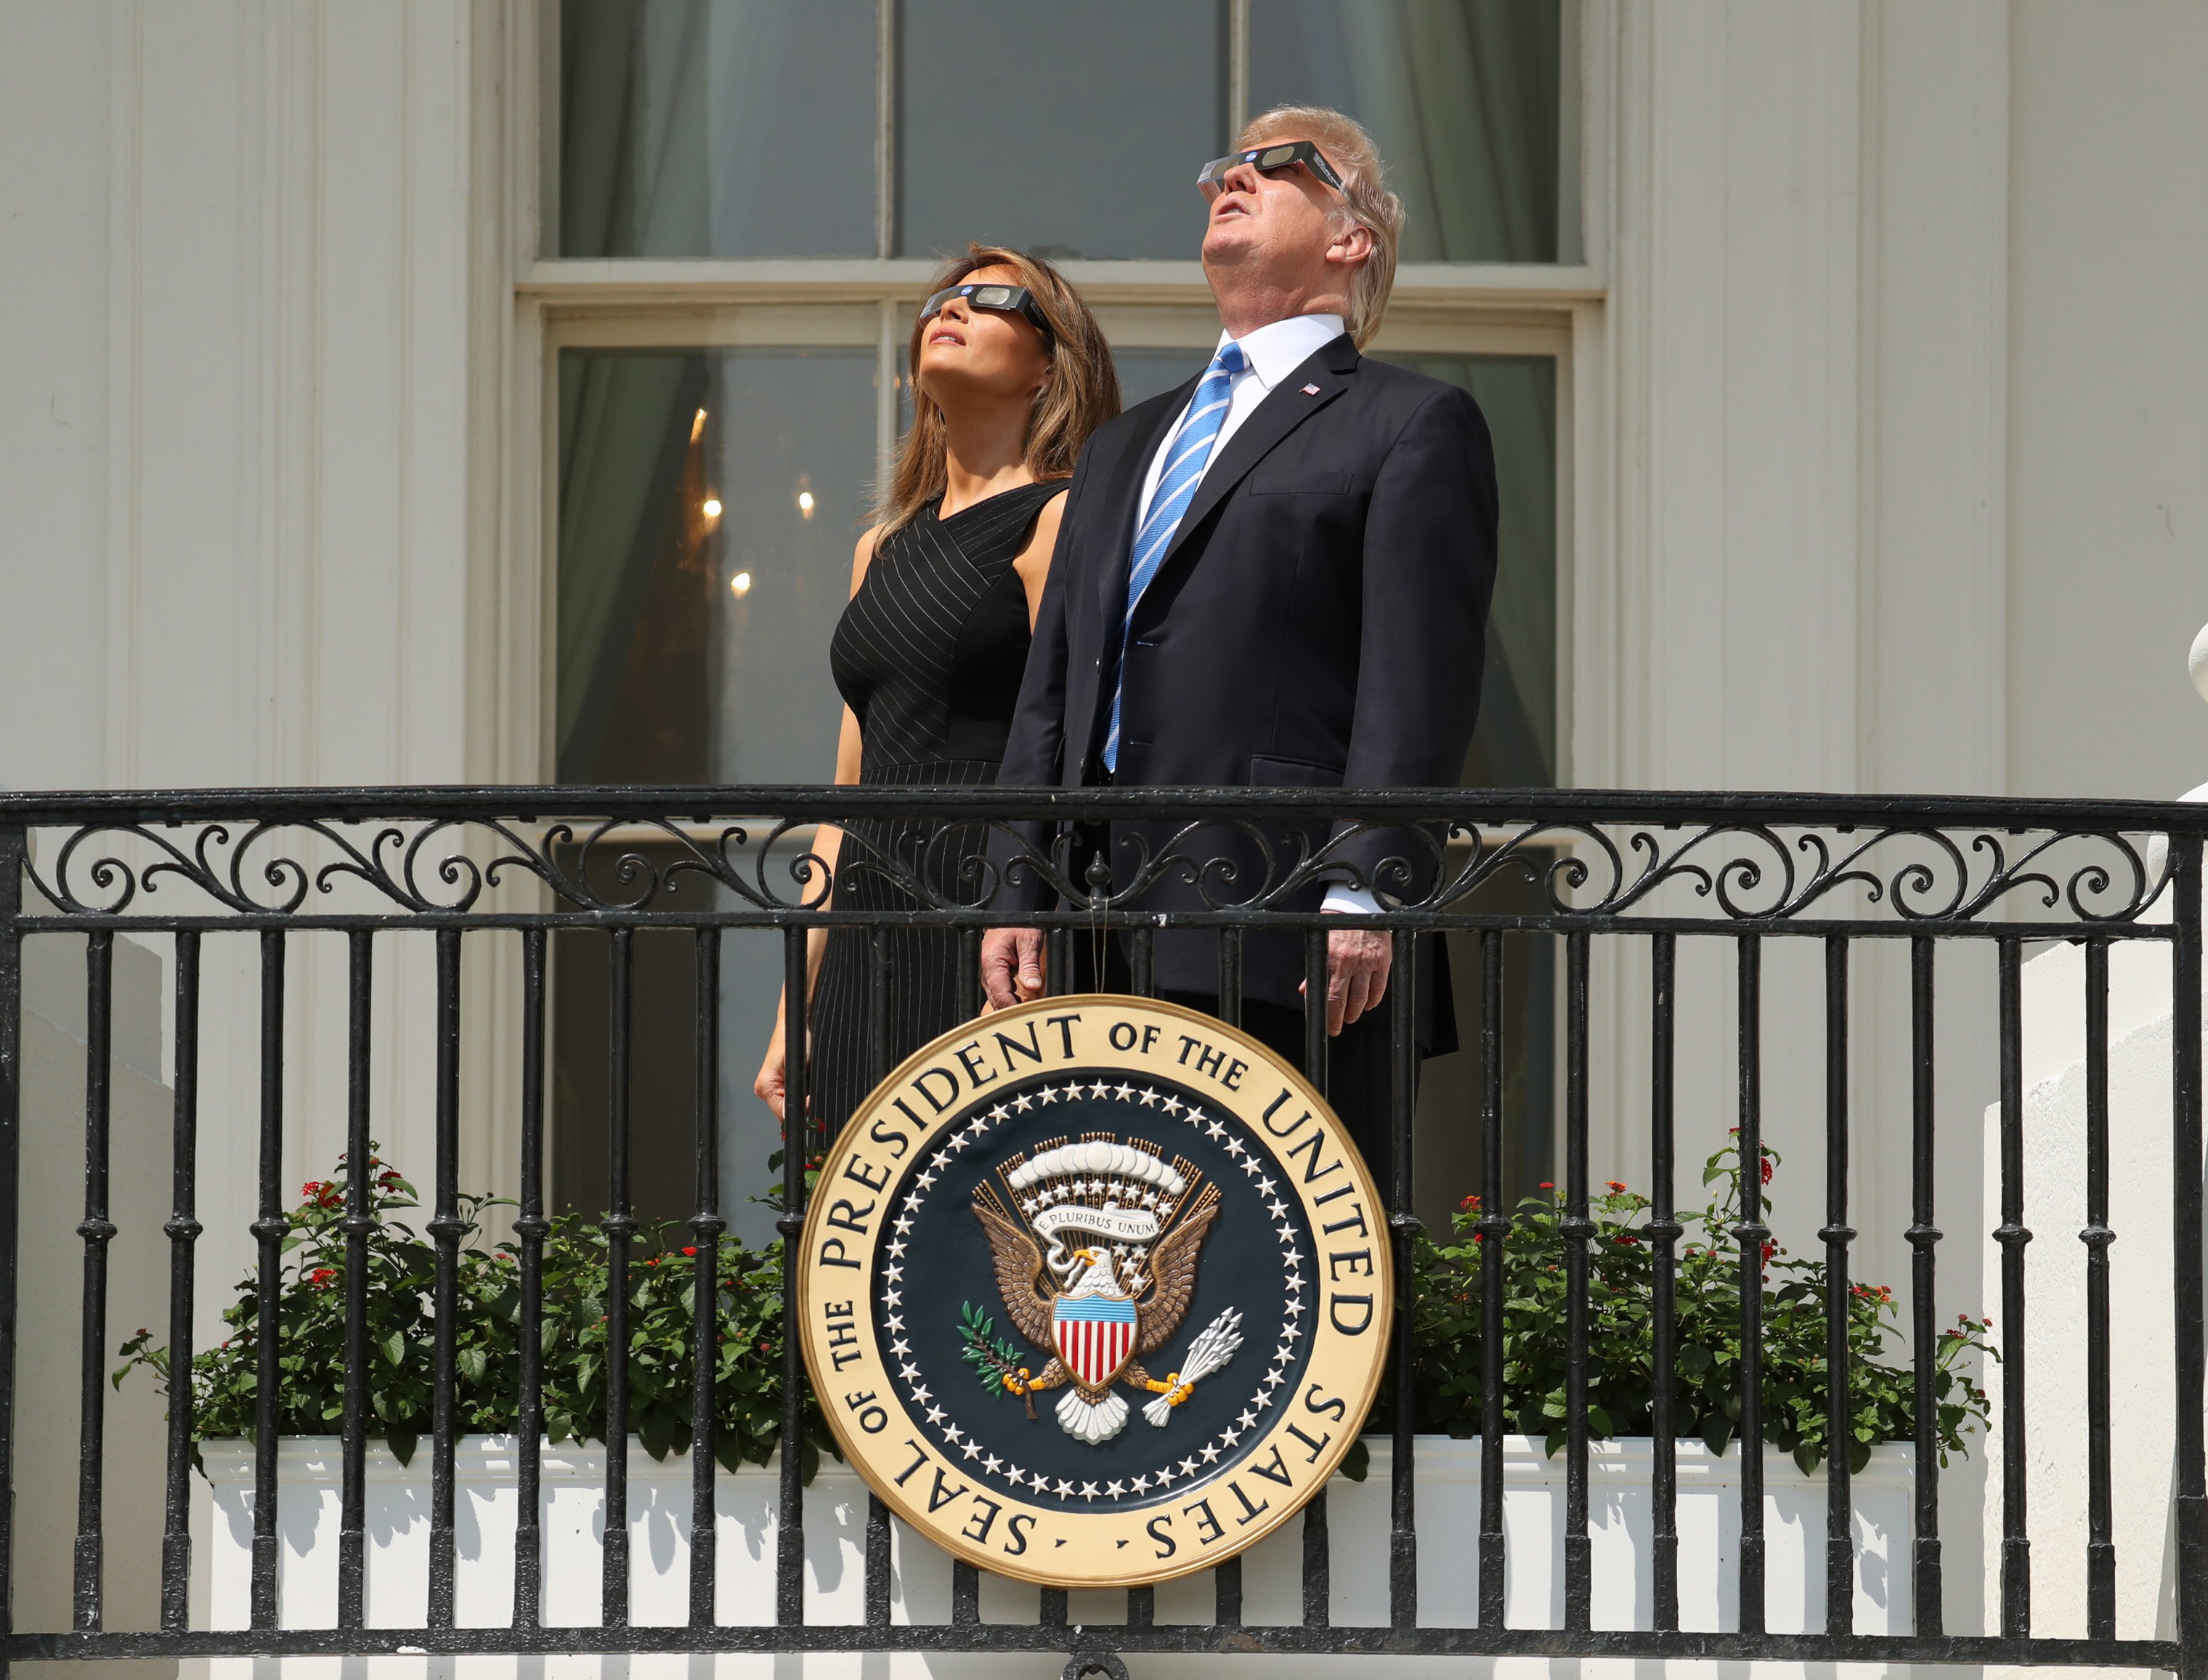 President Trump and First Lady Melania Trump wear protective glasses as they view the solar eclipse at the White House in Washington on Aug. 21, 2017.